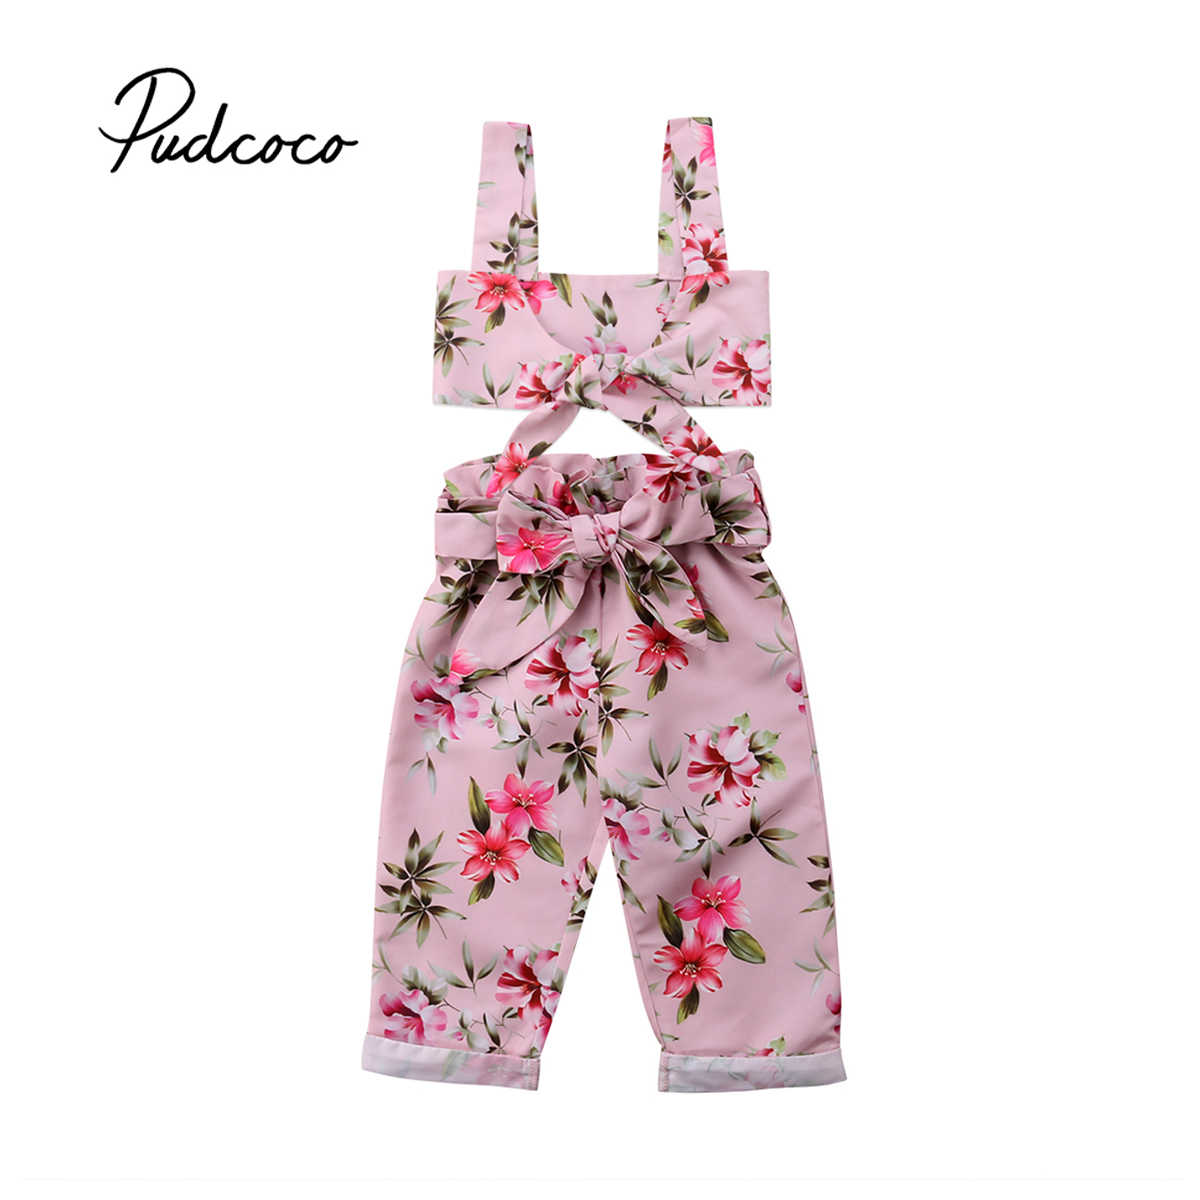 36a59e4125e7 Detail Feedback Questions about Pudcoco Summer Toddler Kids Baby ...